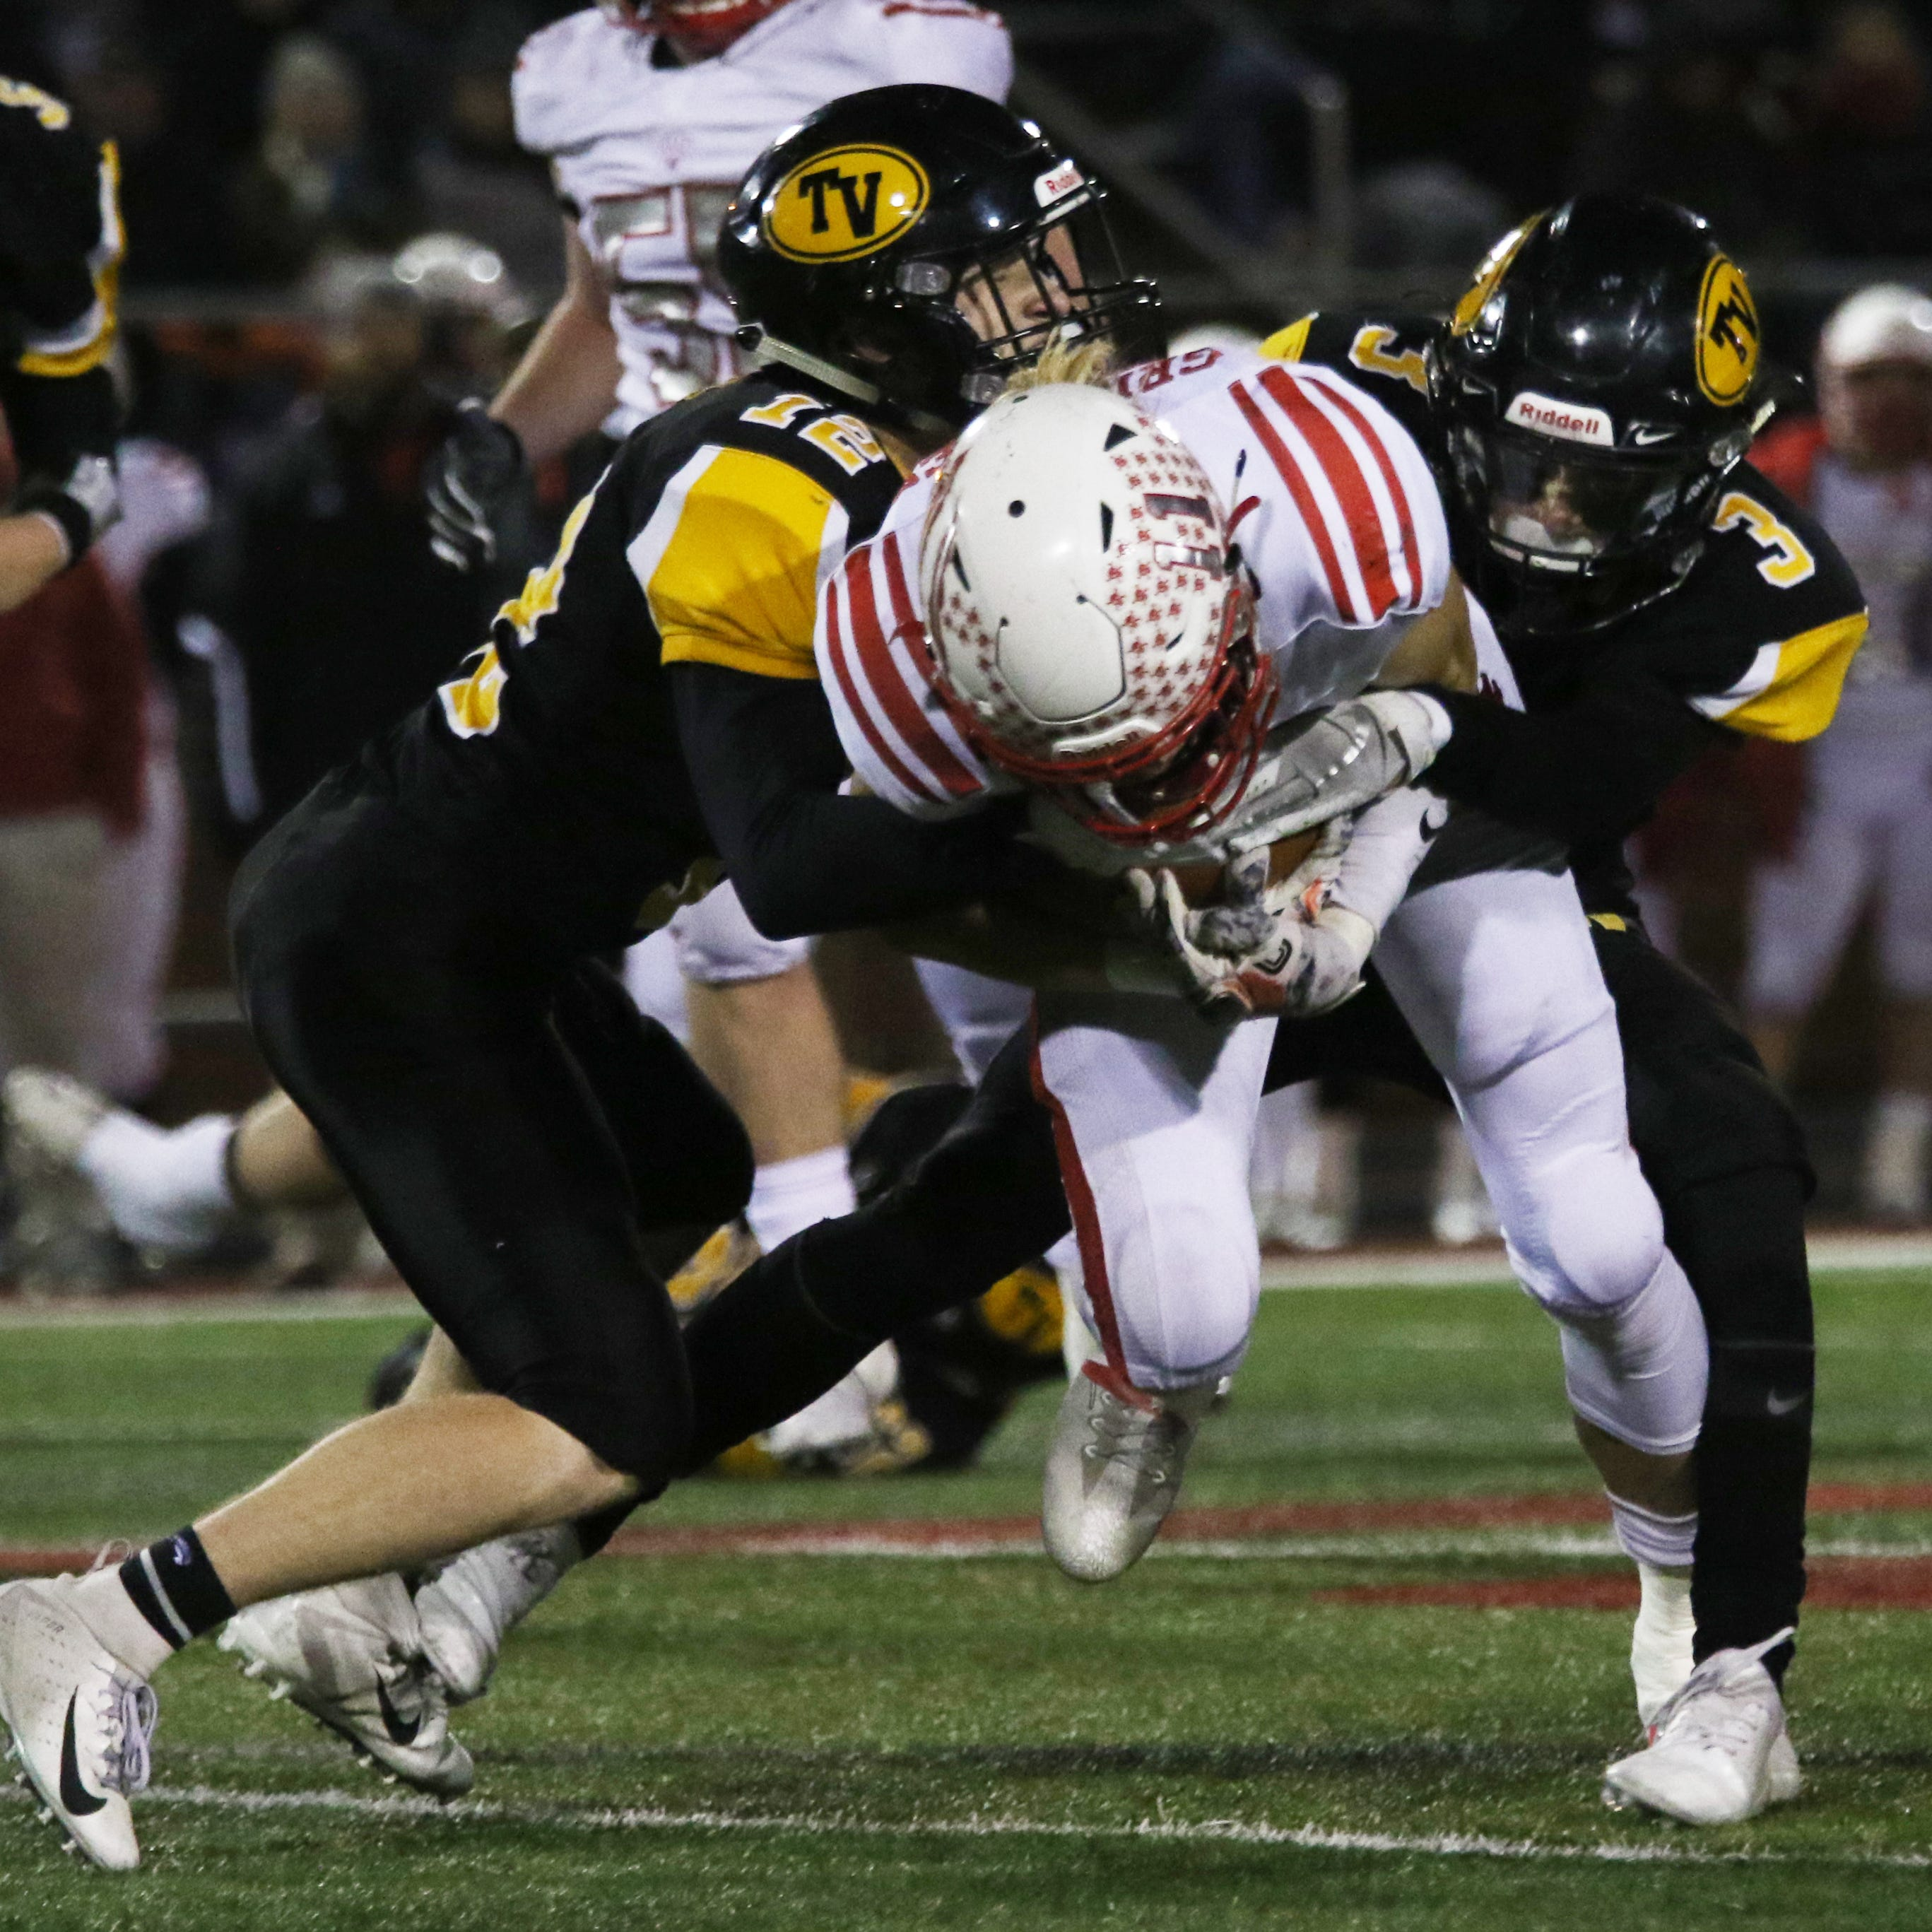 HS Football: Defensive miscues haunt Tri-Valley in loss